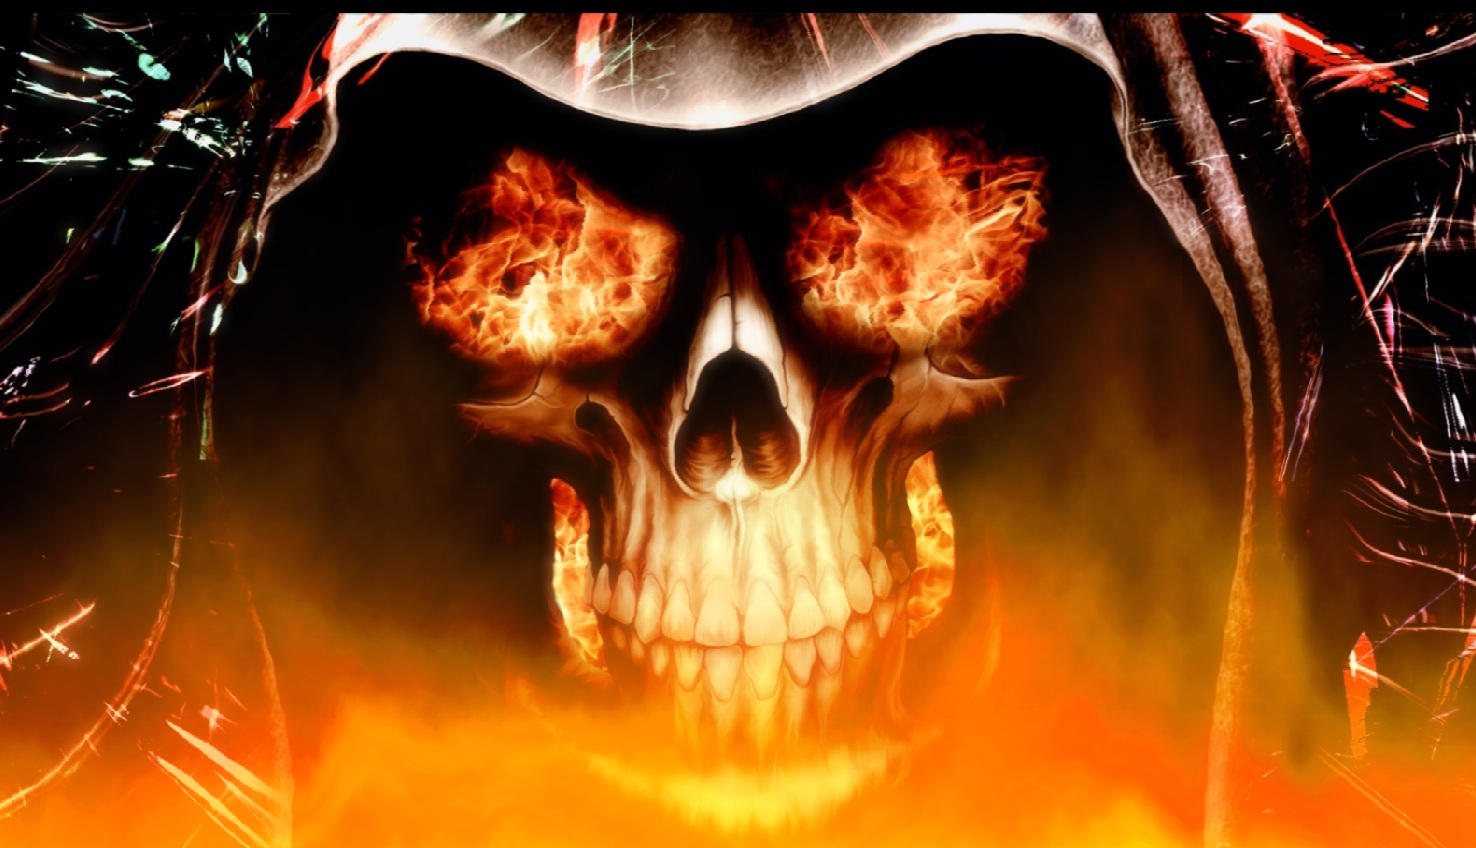 Download Fire Skull Animated Wallpaper DesktopAnimatedcom 1476x848